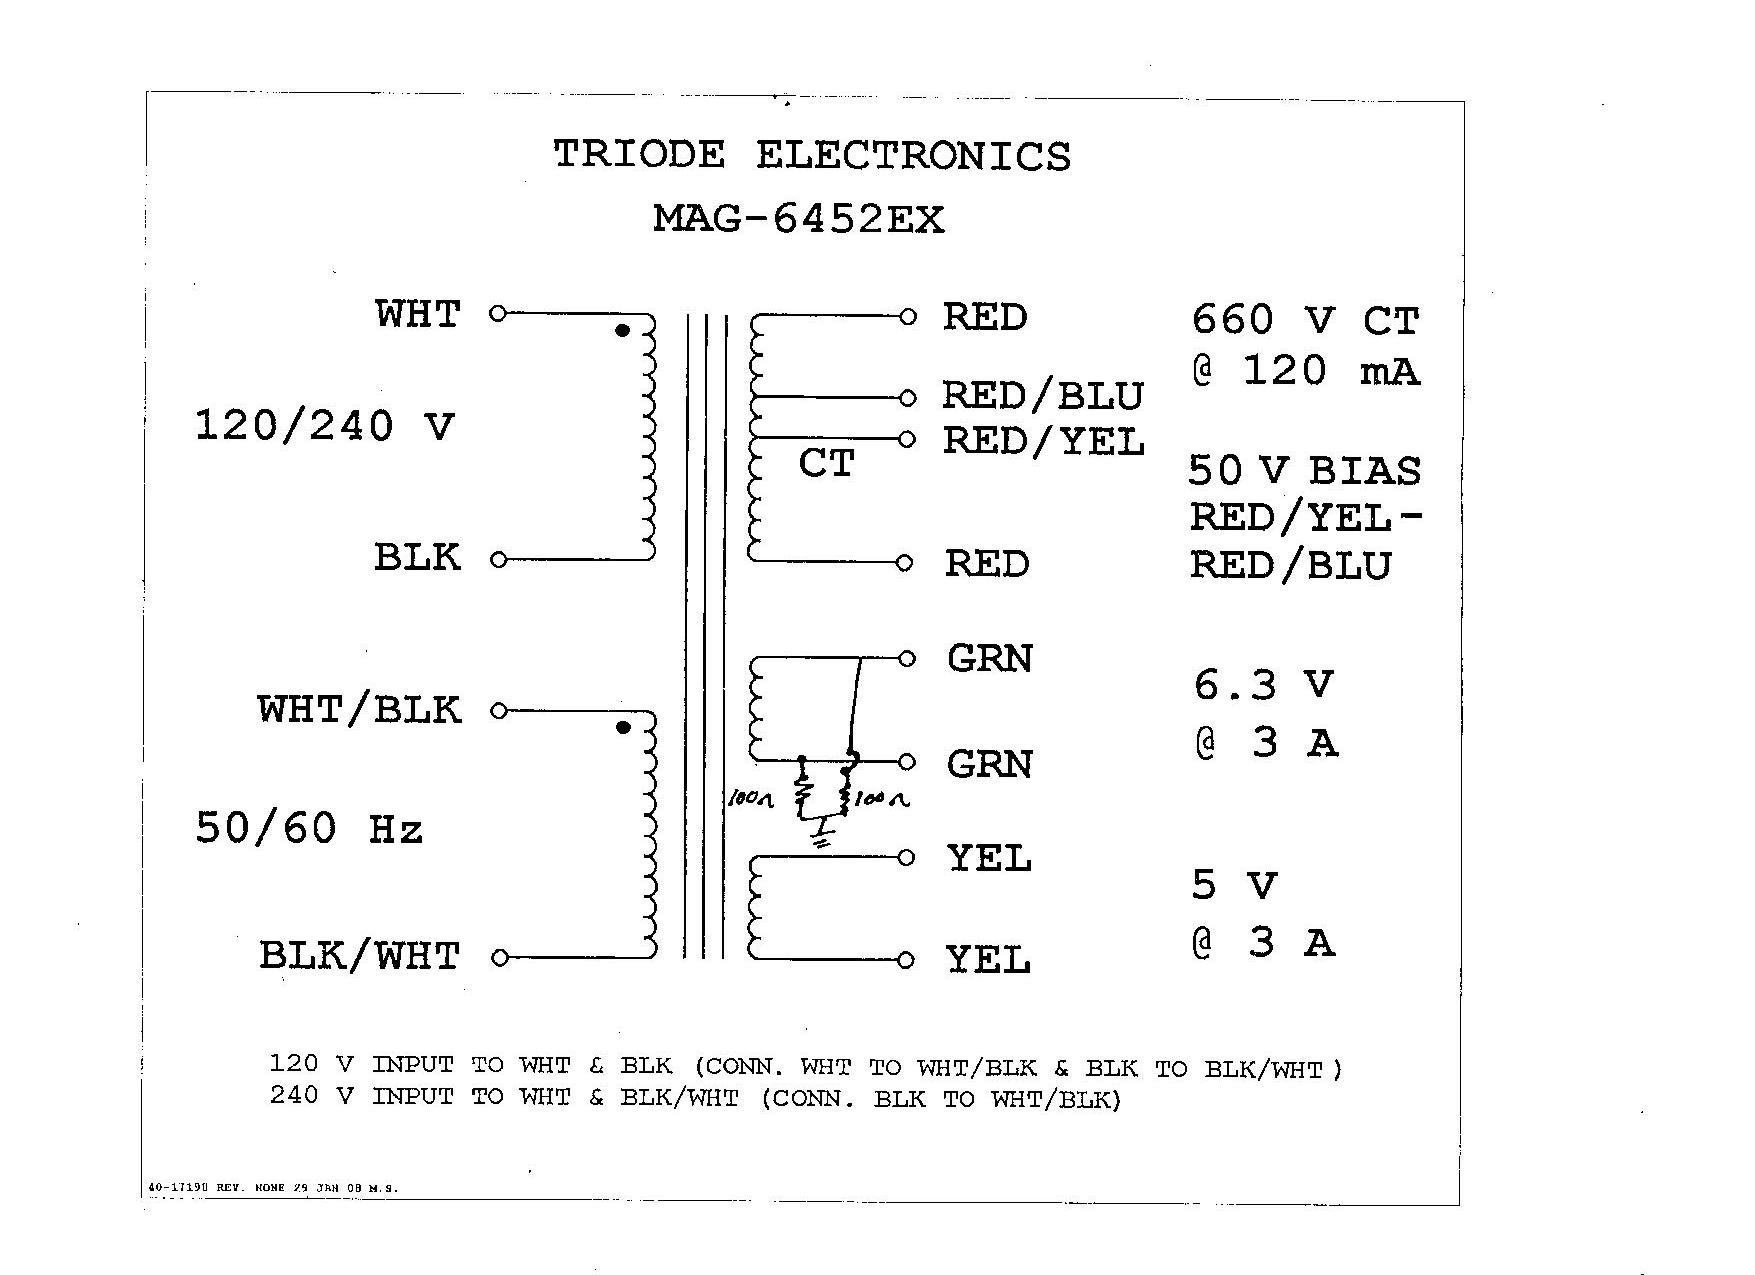 480v 3 Phase Transformer Wiring Diagram | Wiring Diagram Jefferson Transformer Wiring Diagram on transformer vector diagrams, ceiling fans diagrams, transformer connection diagrams, transformer winding diagrams, transformer schematic diagram, transformer grounding, transformer types, transformer blueprints, transformer hook up diagrams, led circuit diagrams, transformer fuse sizing, transformer electrical, transformer formulas, three-phase transformer diagrams, transformer phase displacement diagrams, 3 phase motor control diagrams, transformer single line diagram, transformer installation, transformer design diagrams, transformer equations,